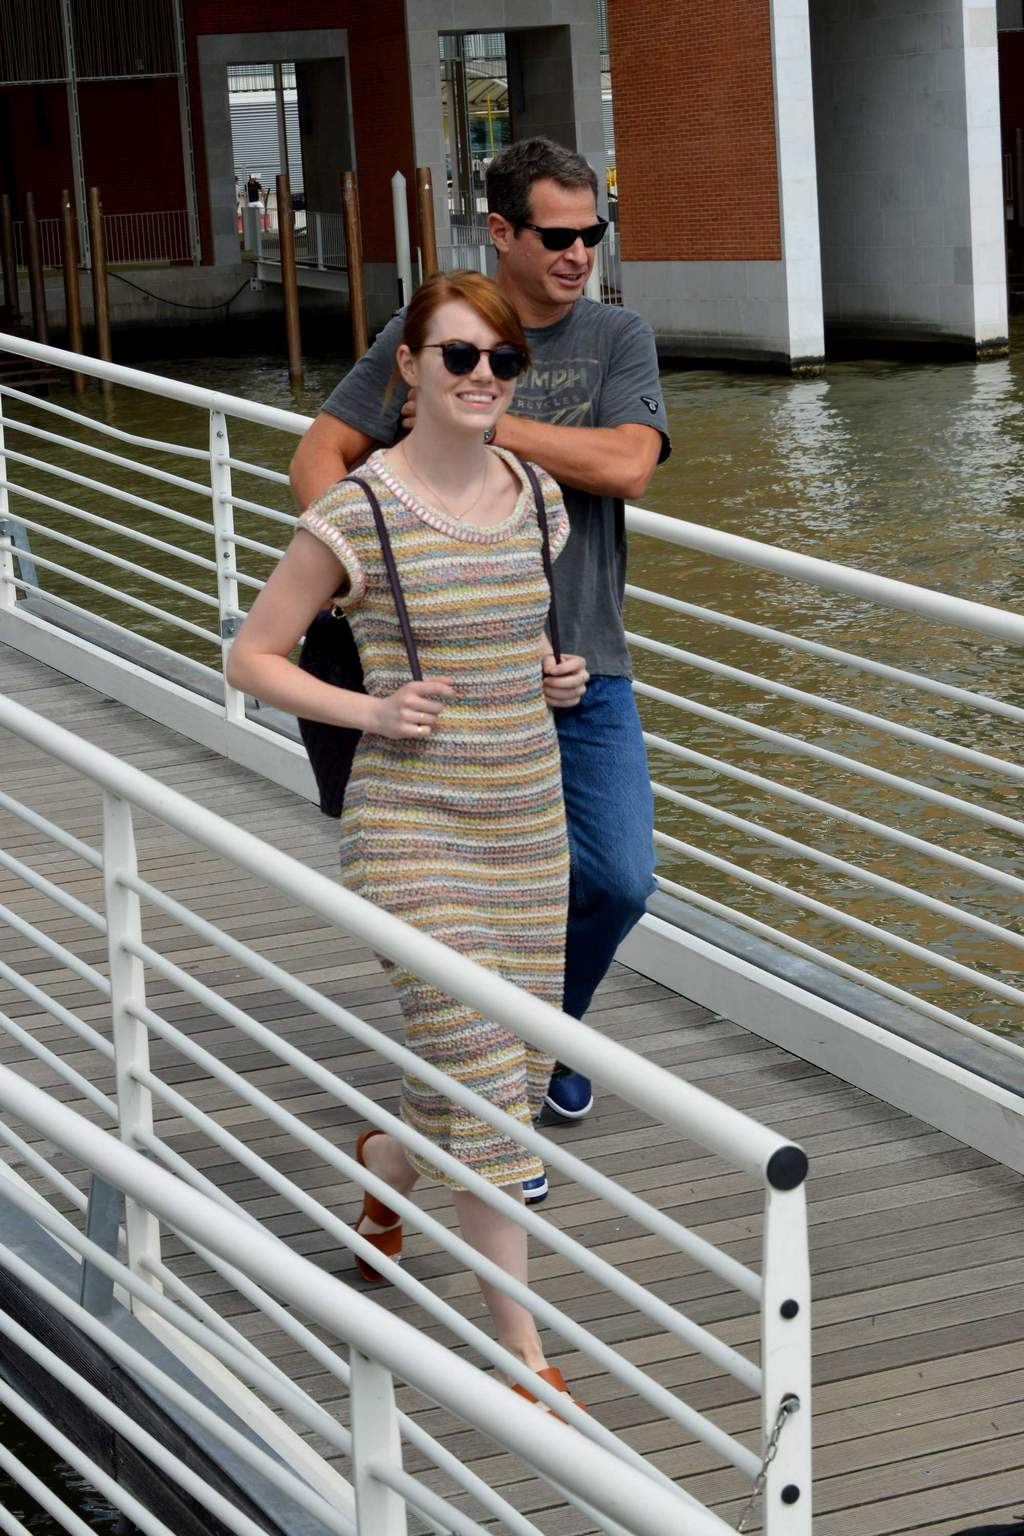 HQ Photos of Emma Stone – arrives at the Venice airport for the Venice Film Festival in Venice, Italy